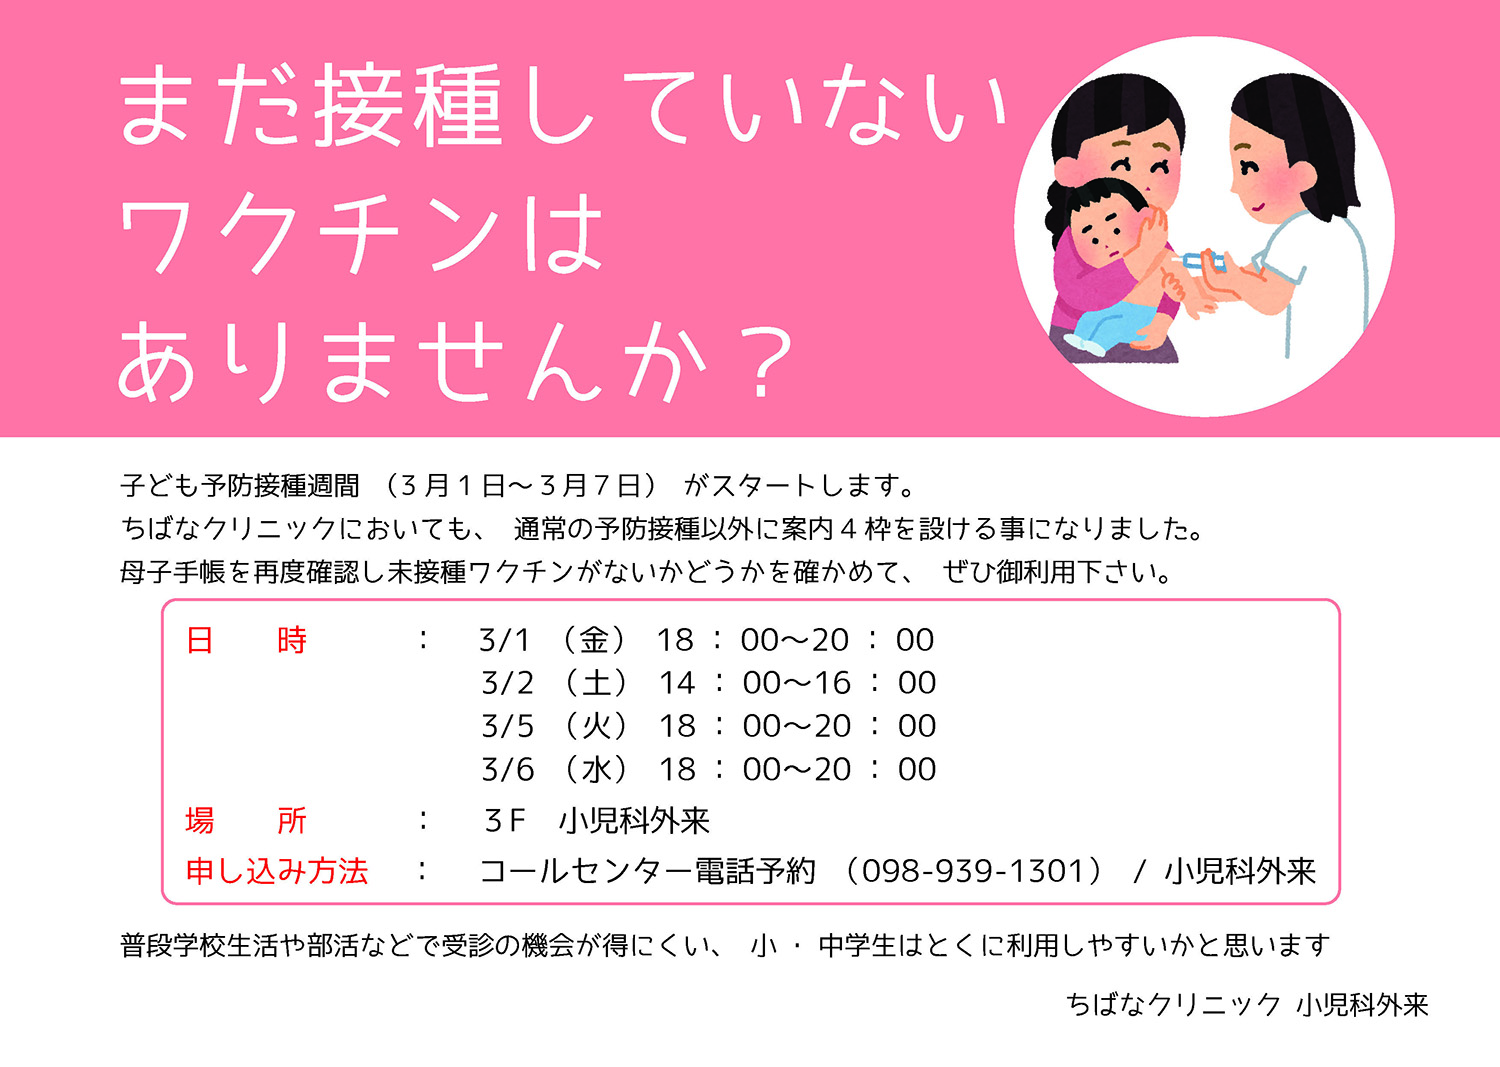 子ども予防接種週間